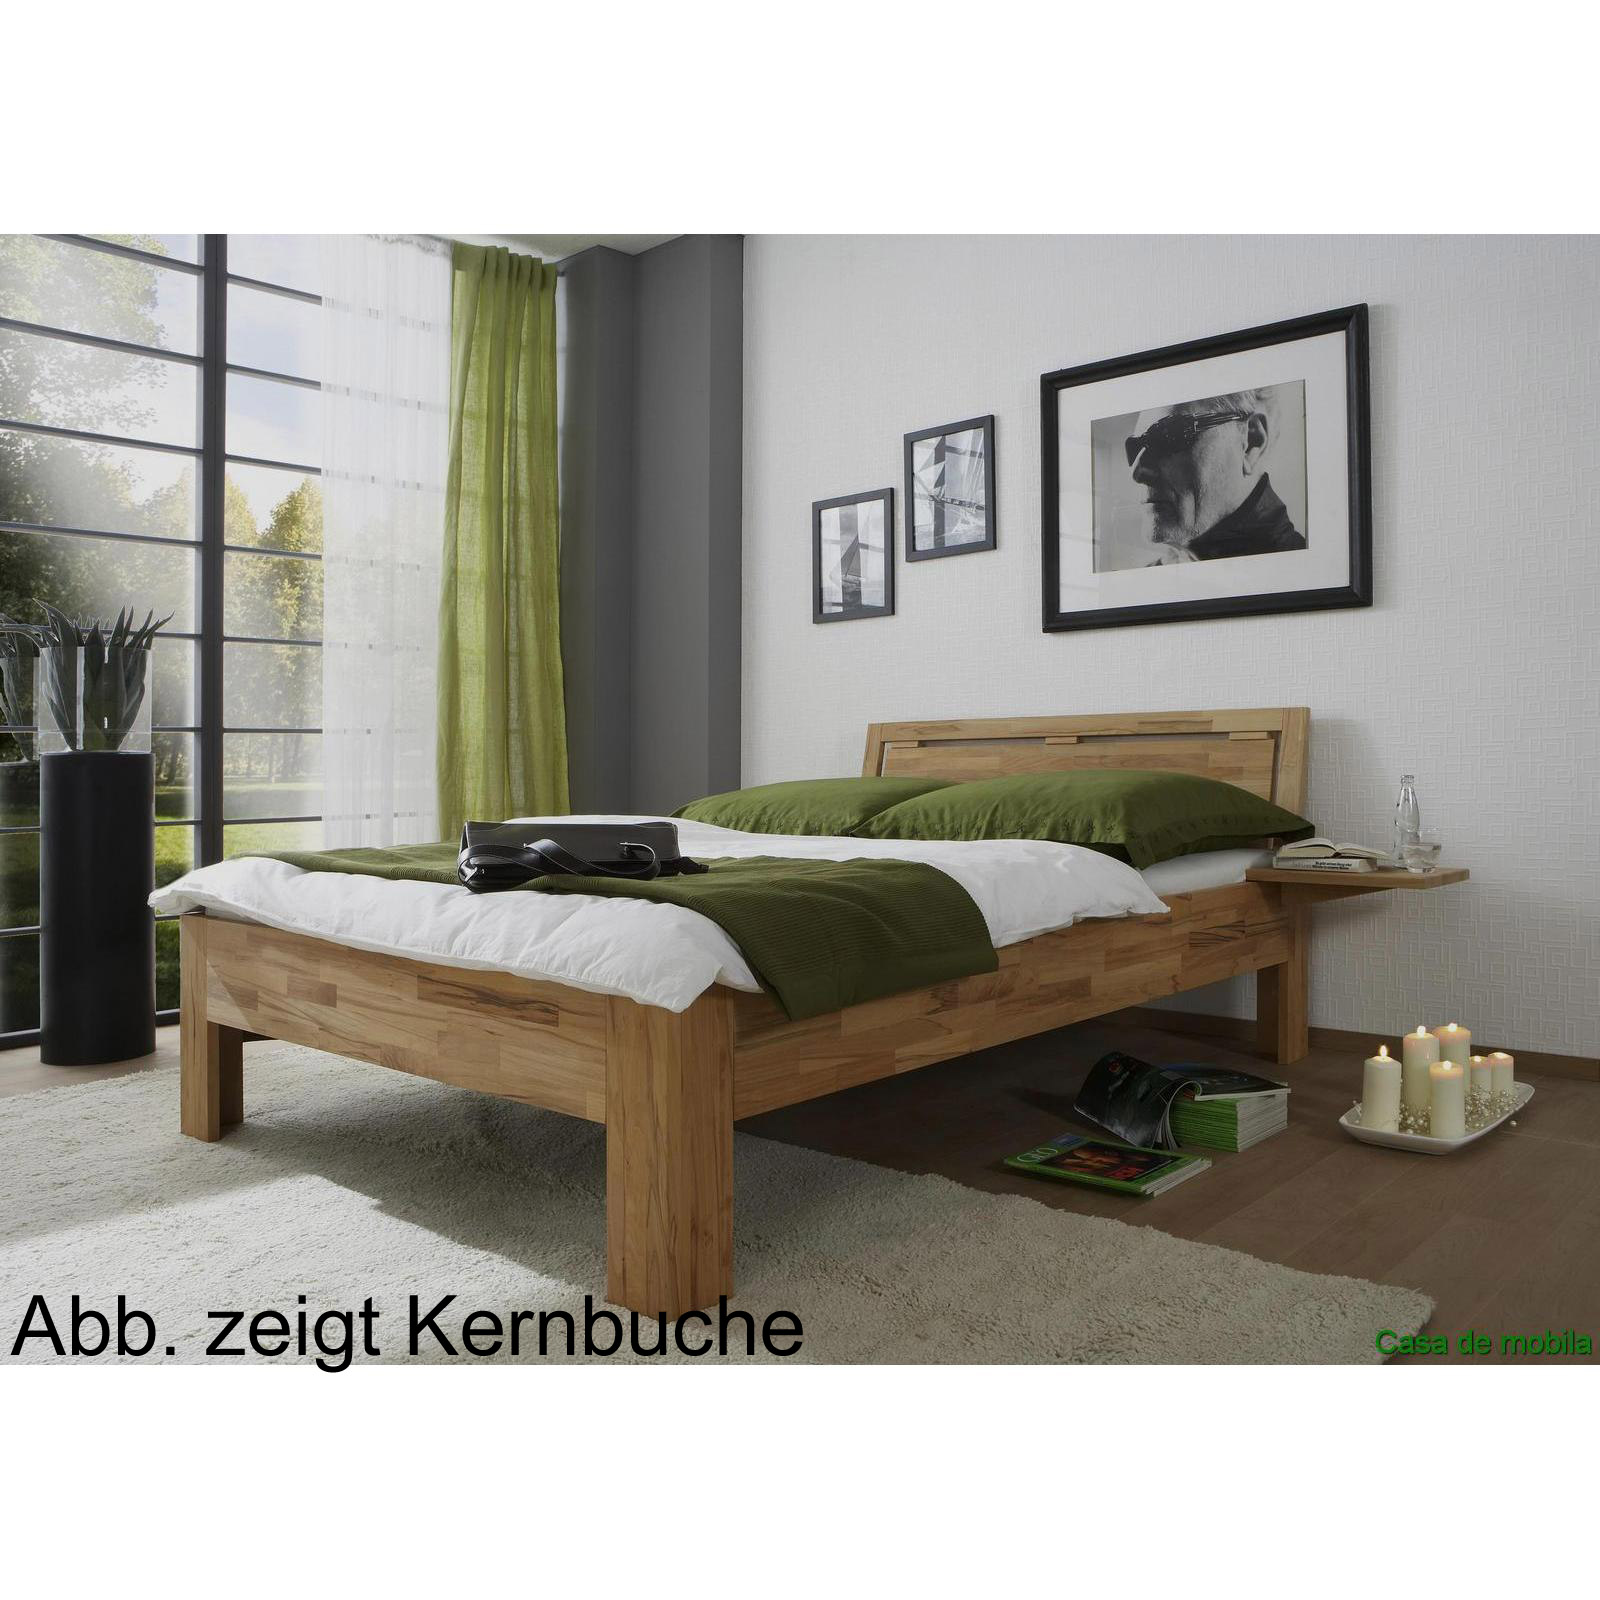 echtholz bett buche massiv ge lt 120x200 caro mit nachtkonsole. Black Bedroom Furniture Sets. Home Design Ideas